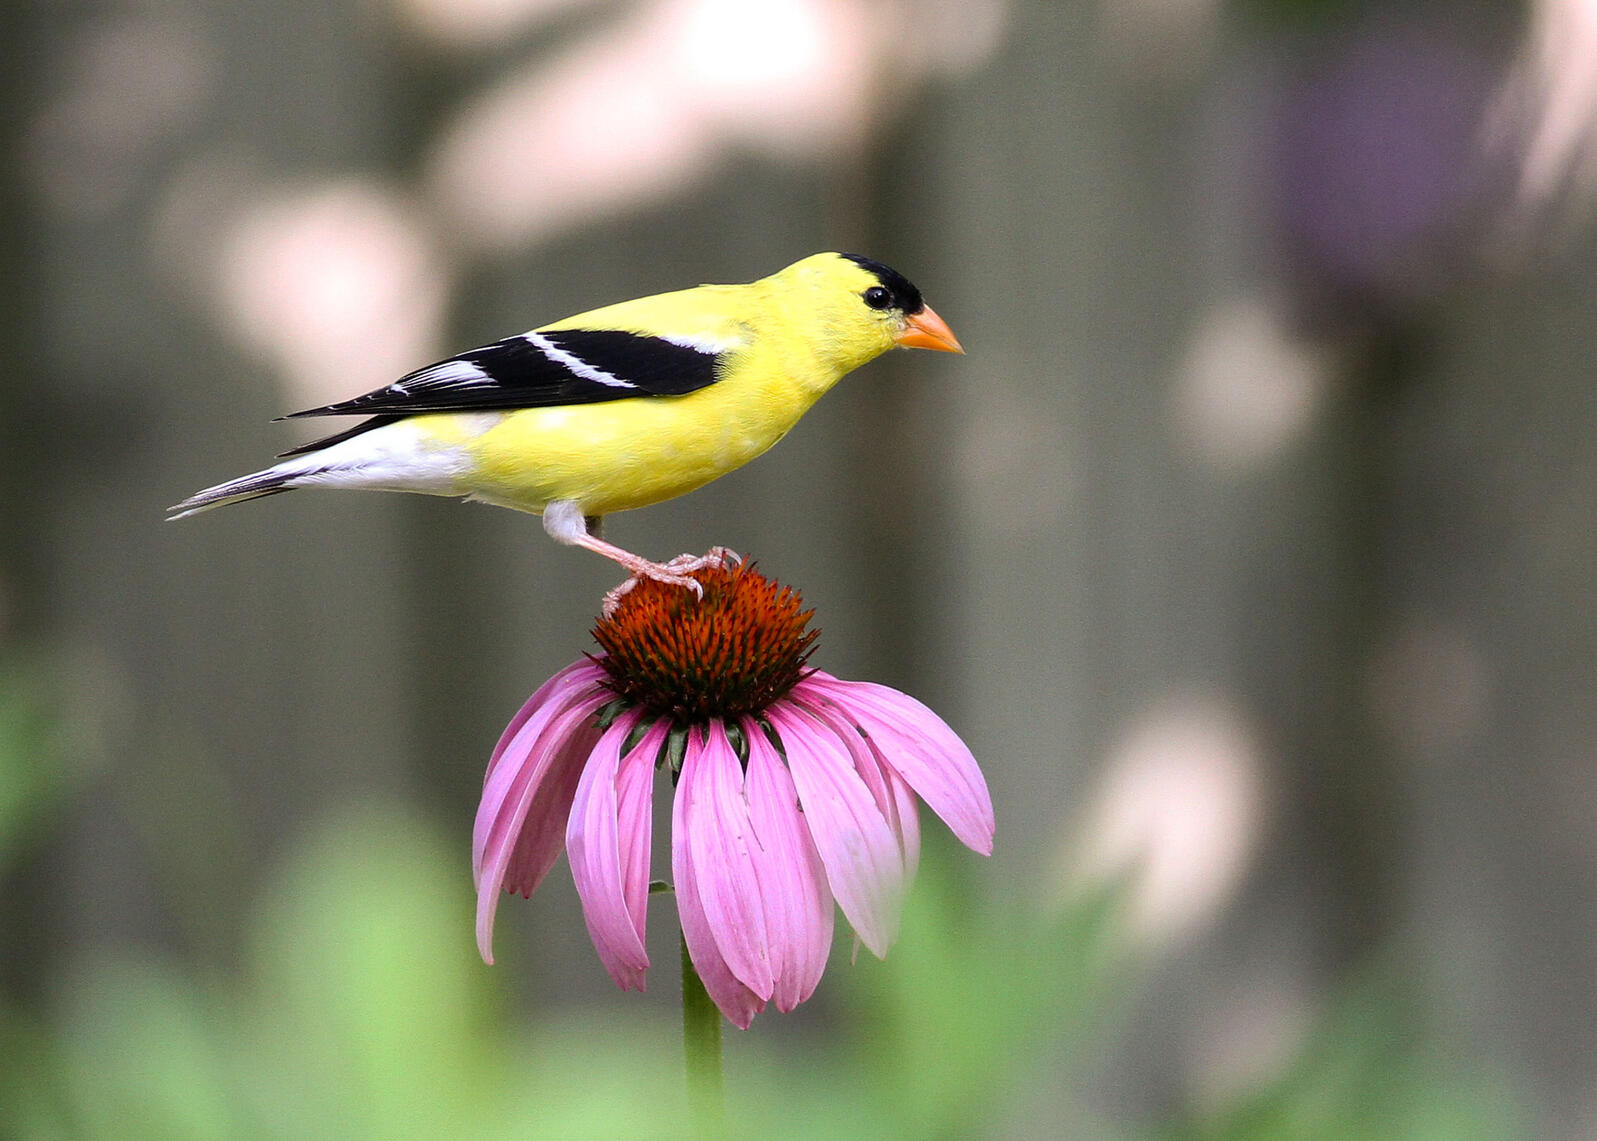 American Goldfinch on Echinacea Purpurea, commonly known as Purple Coneflower. Will Stuart